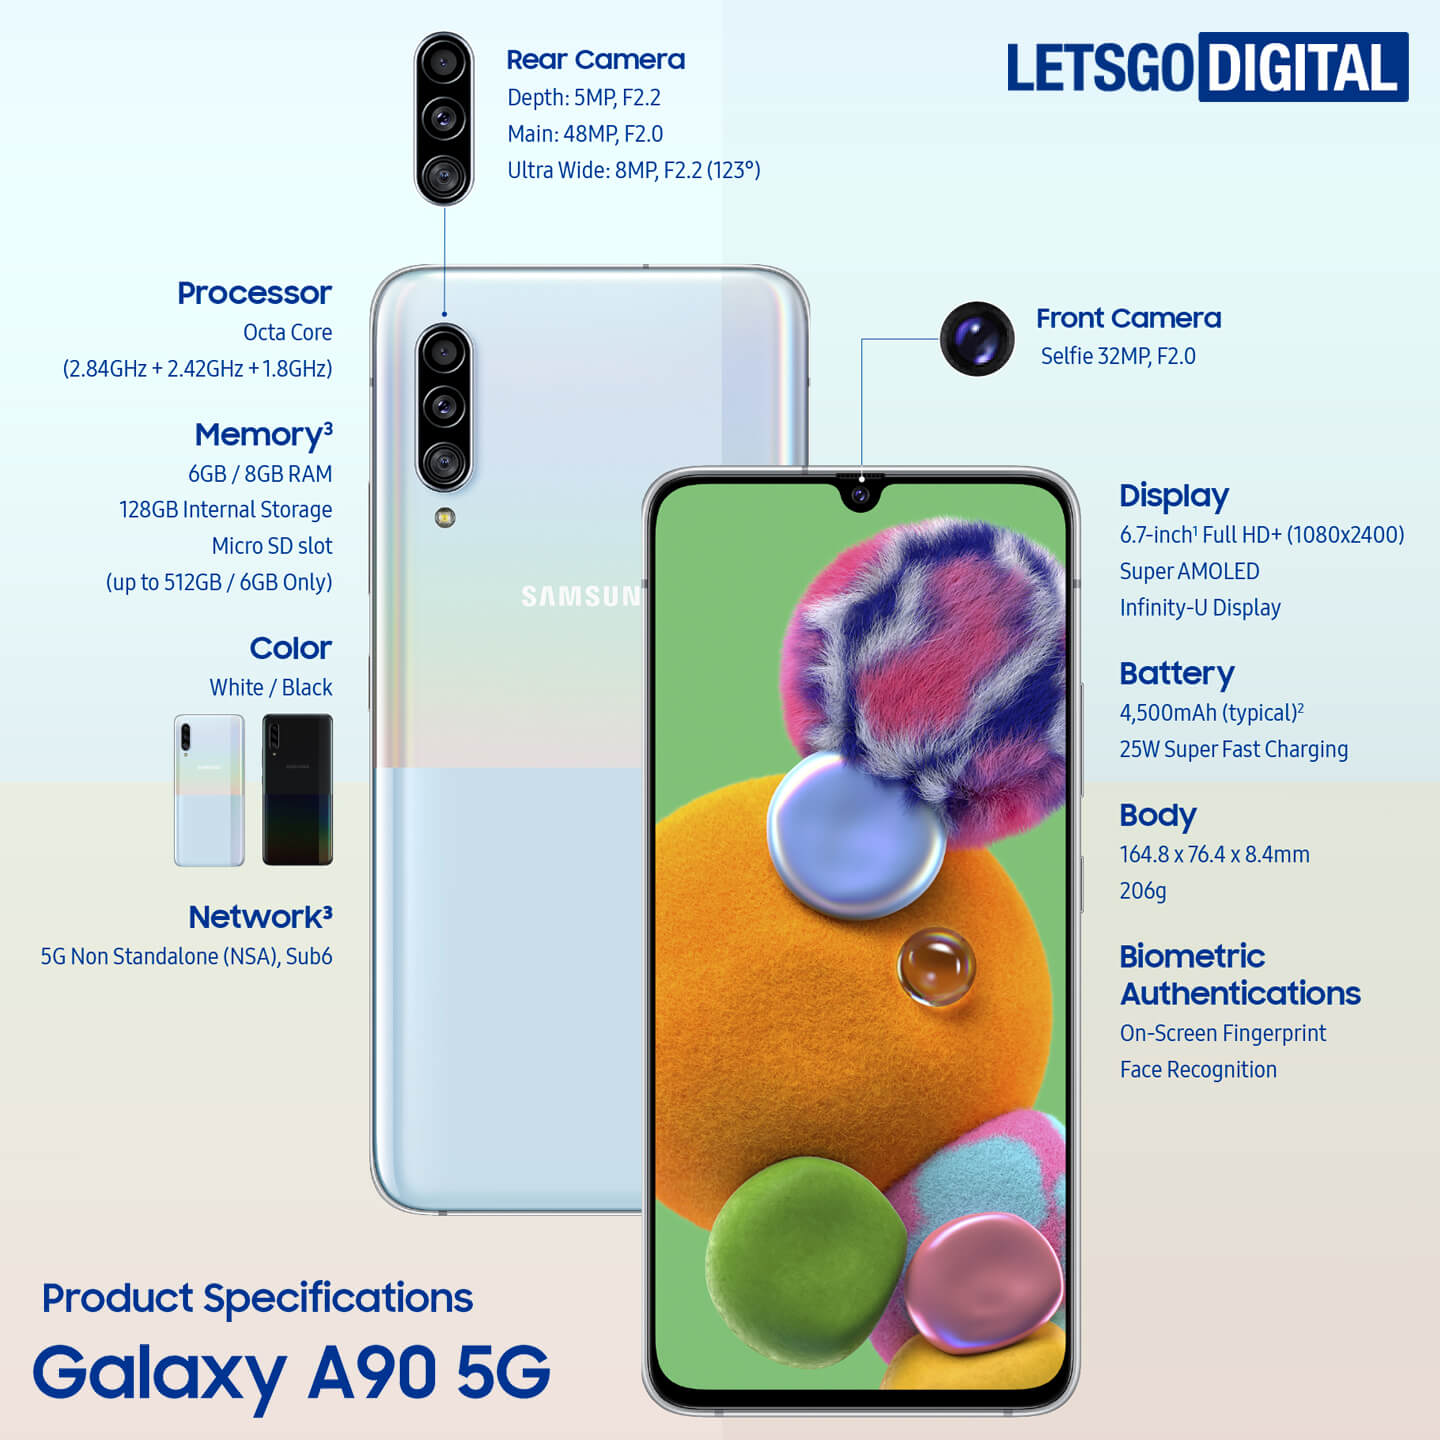 Galaxy A90 specificaties